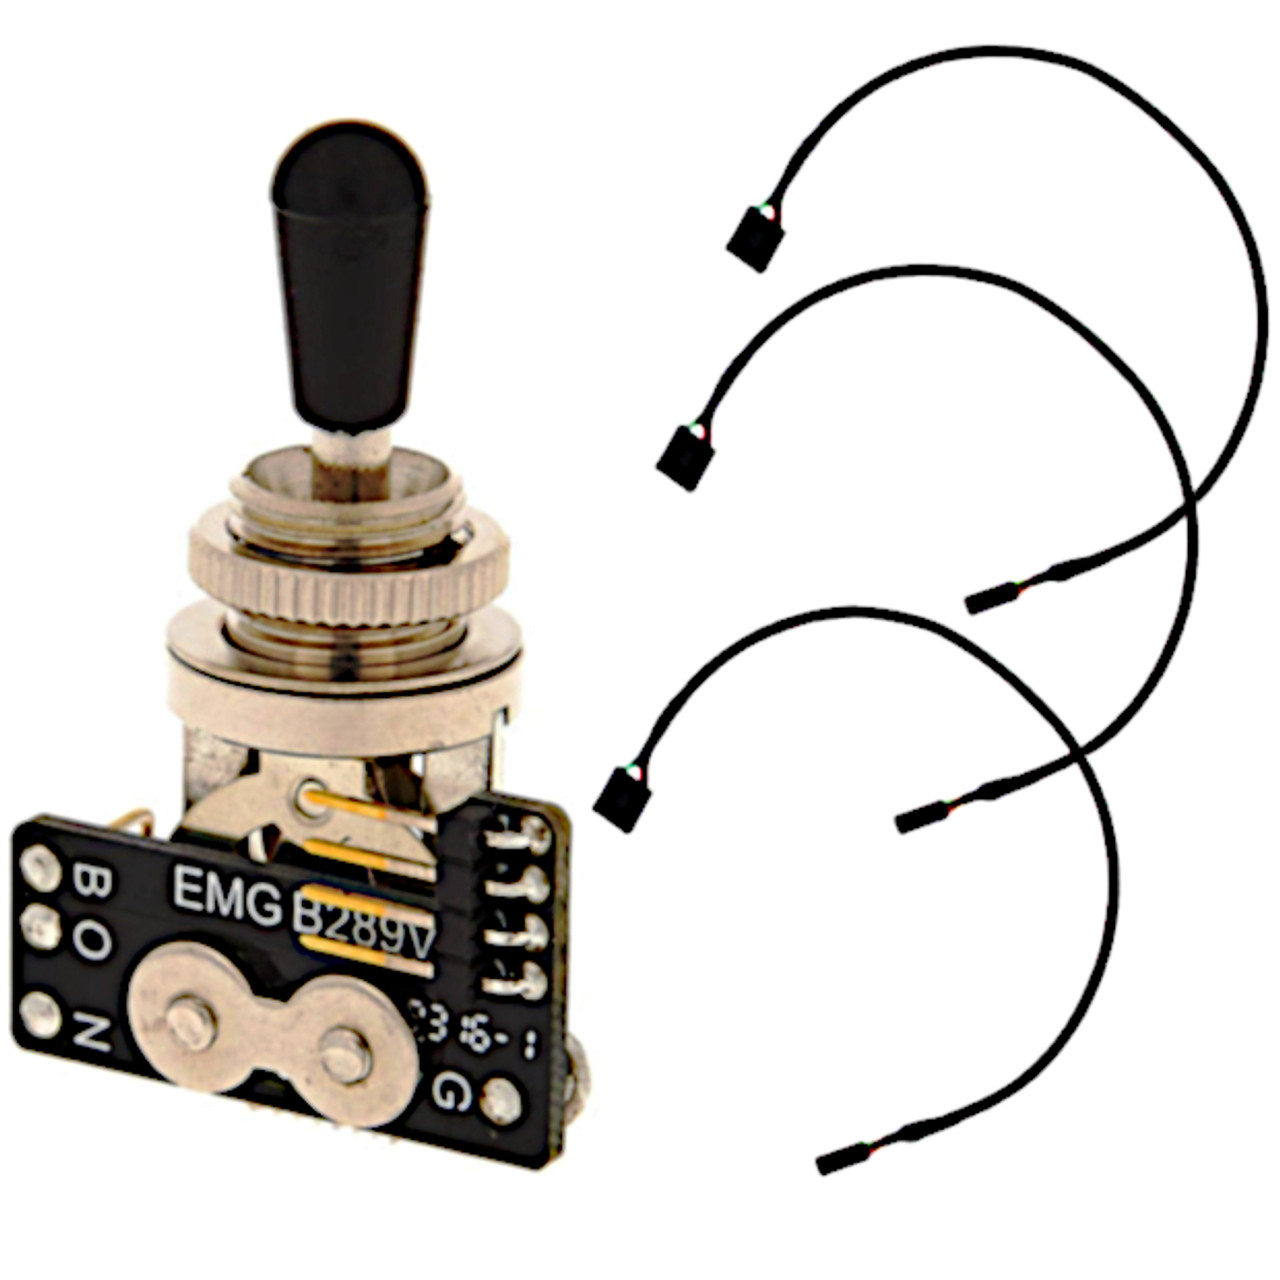 EMG Solderless Toggle Switch w/ Connector Cables